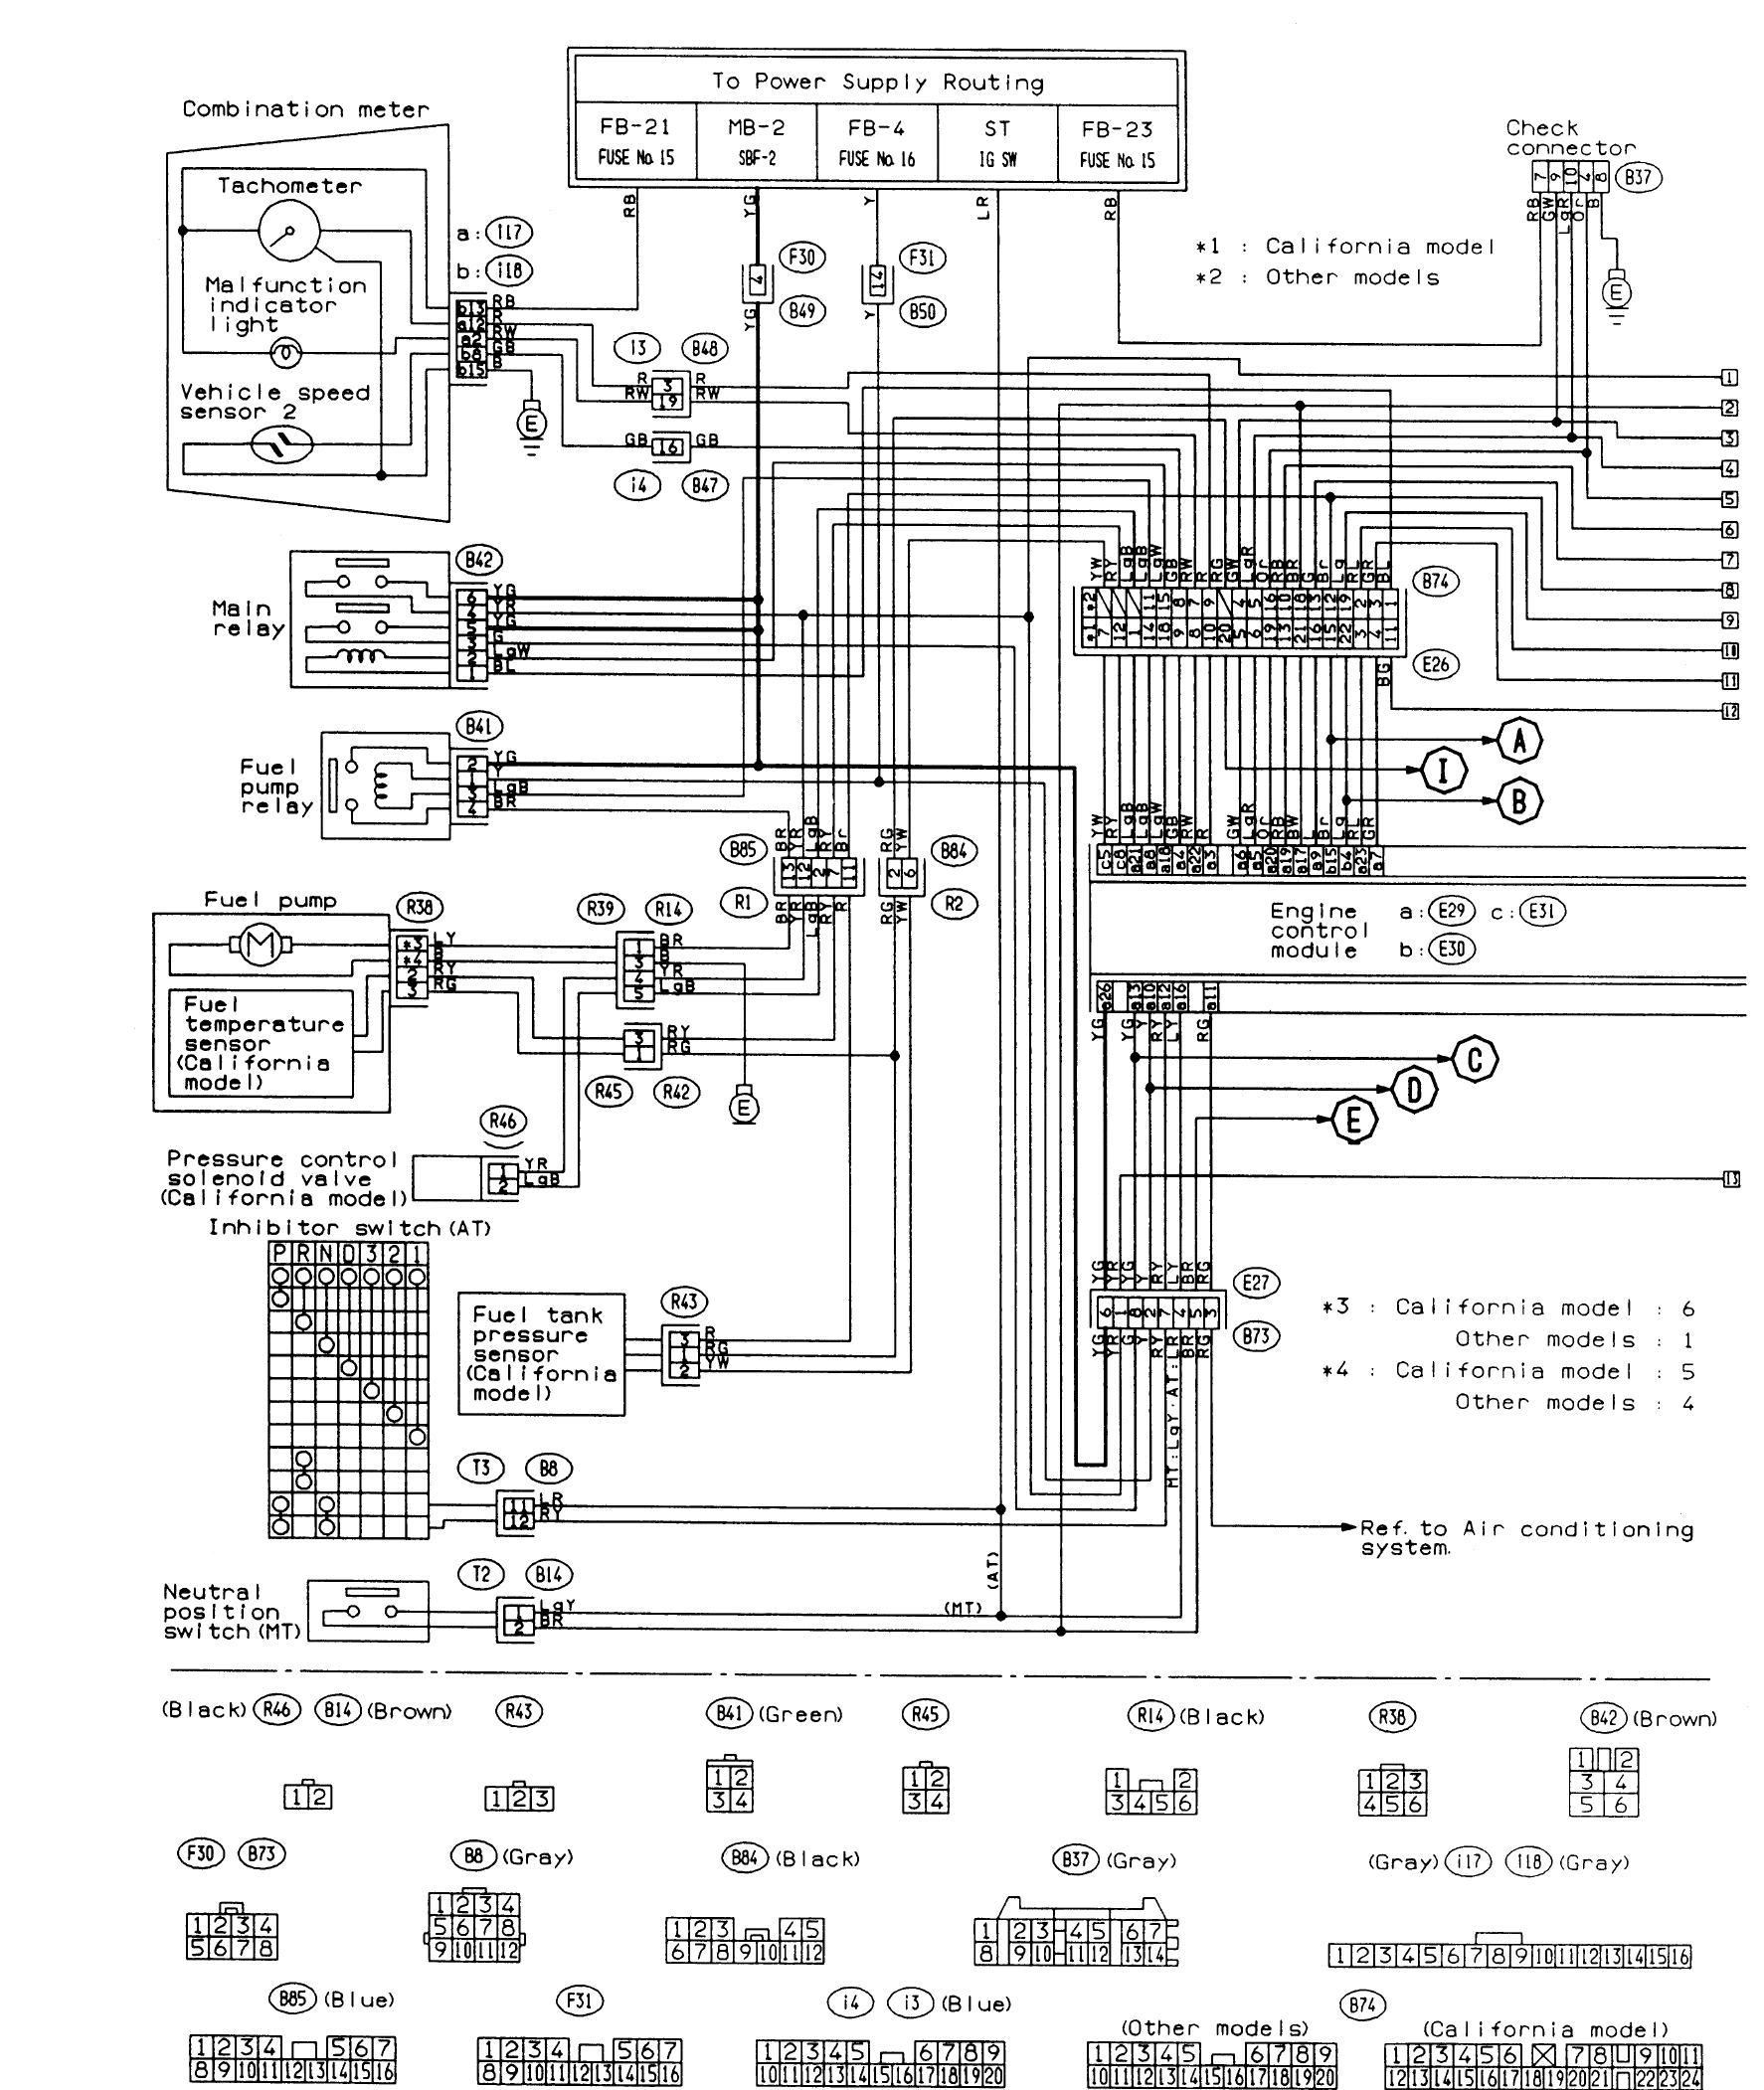 subaru ecu wiring diagram FUSlrCX 93 subaru legacy wiring diagram 1995 subaru legacy wiring diagram 2003 Trailblazer Fuse Box Location at bayanpartner.co